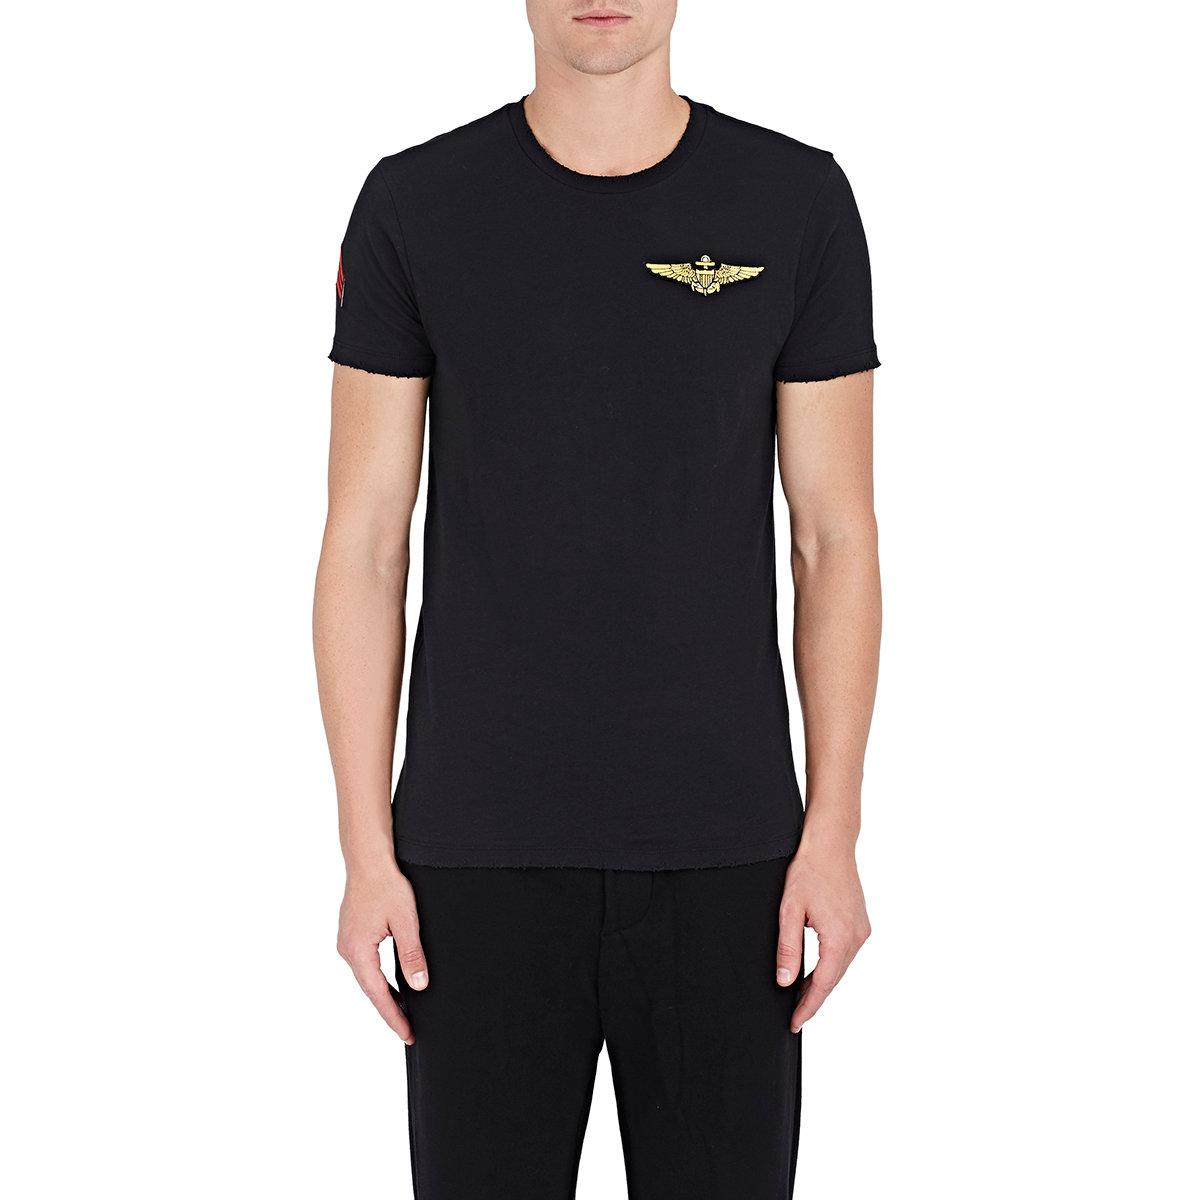 Lyst barneys new york military patch cotton jersey t in